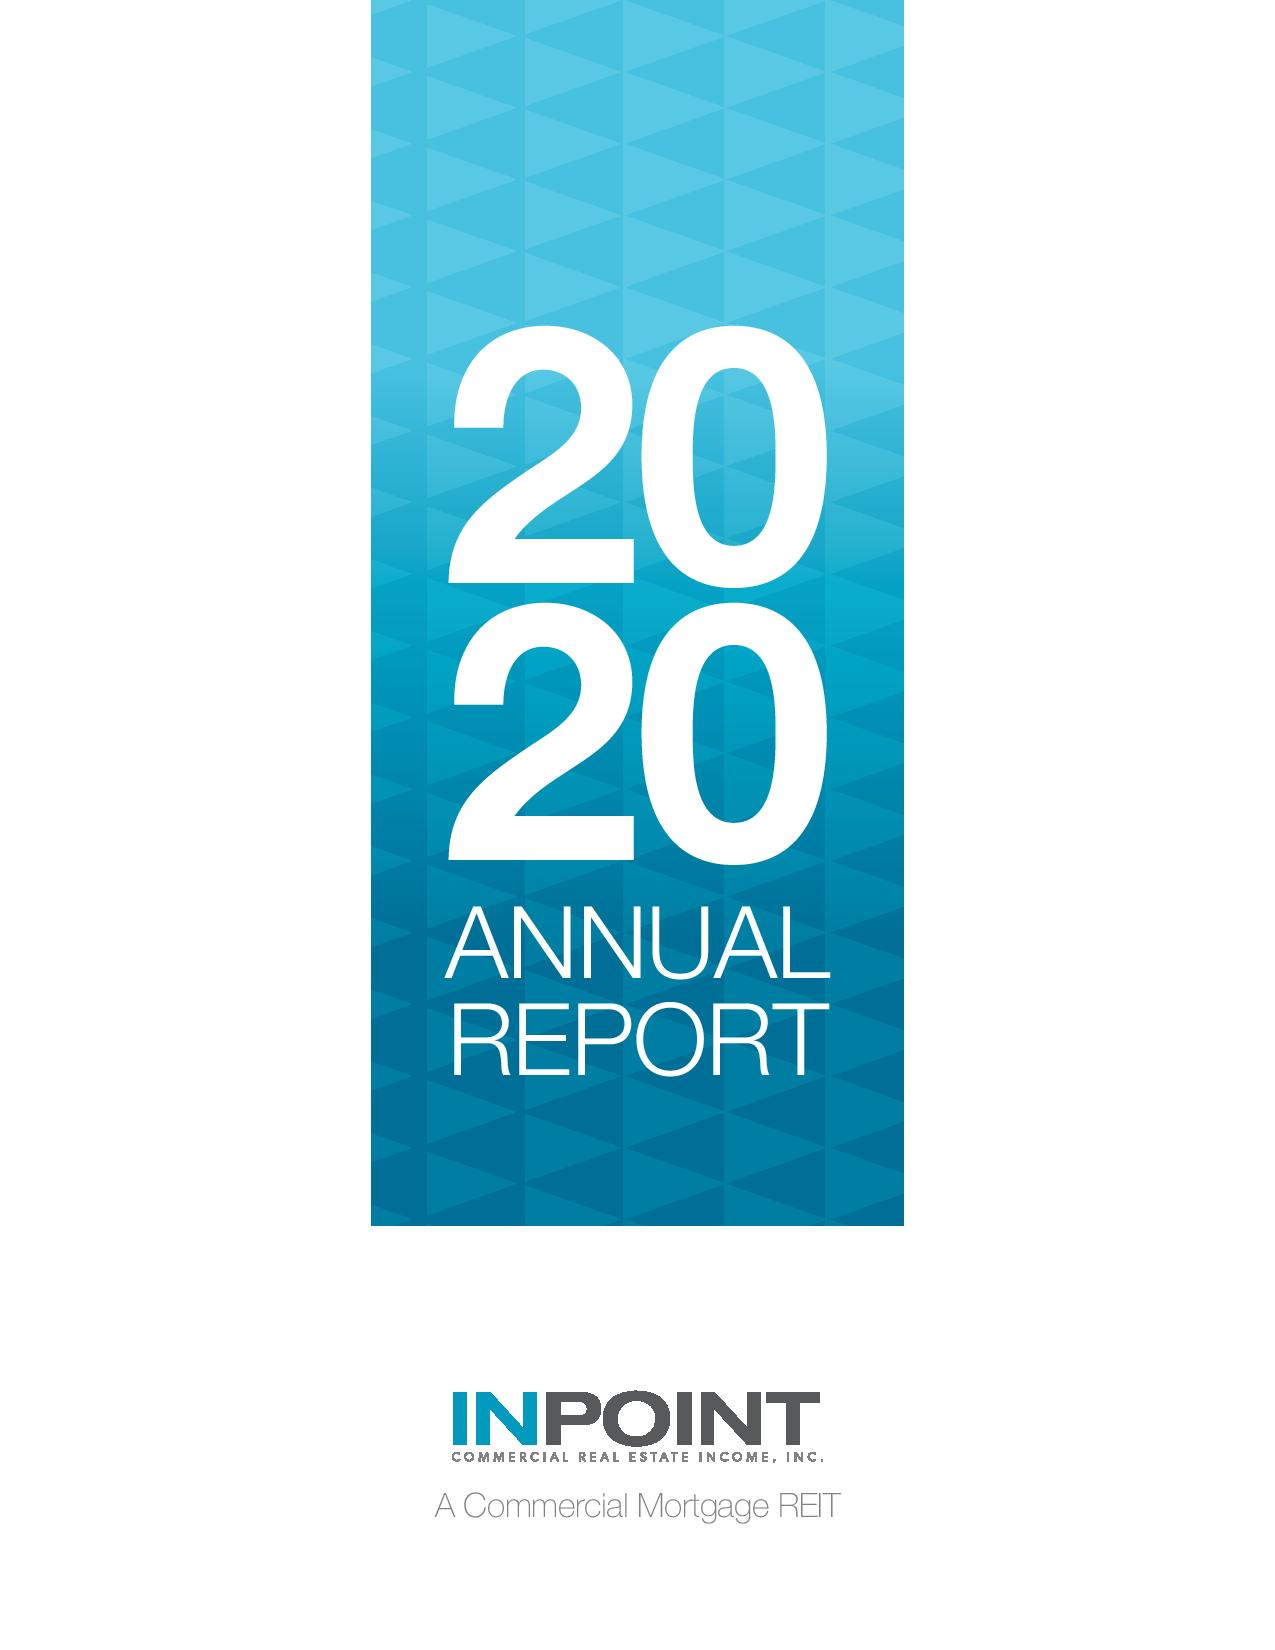 https://inland-investments.com/sites/default/files/2020-InPoint-Annual-Report.jp…